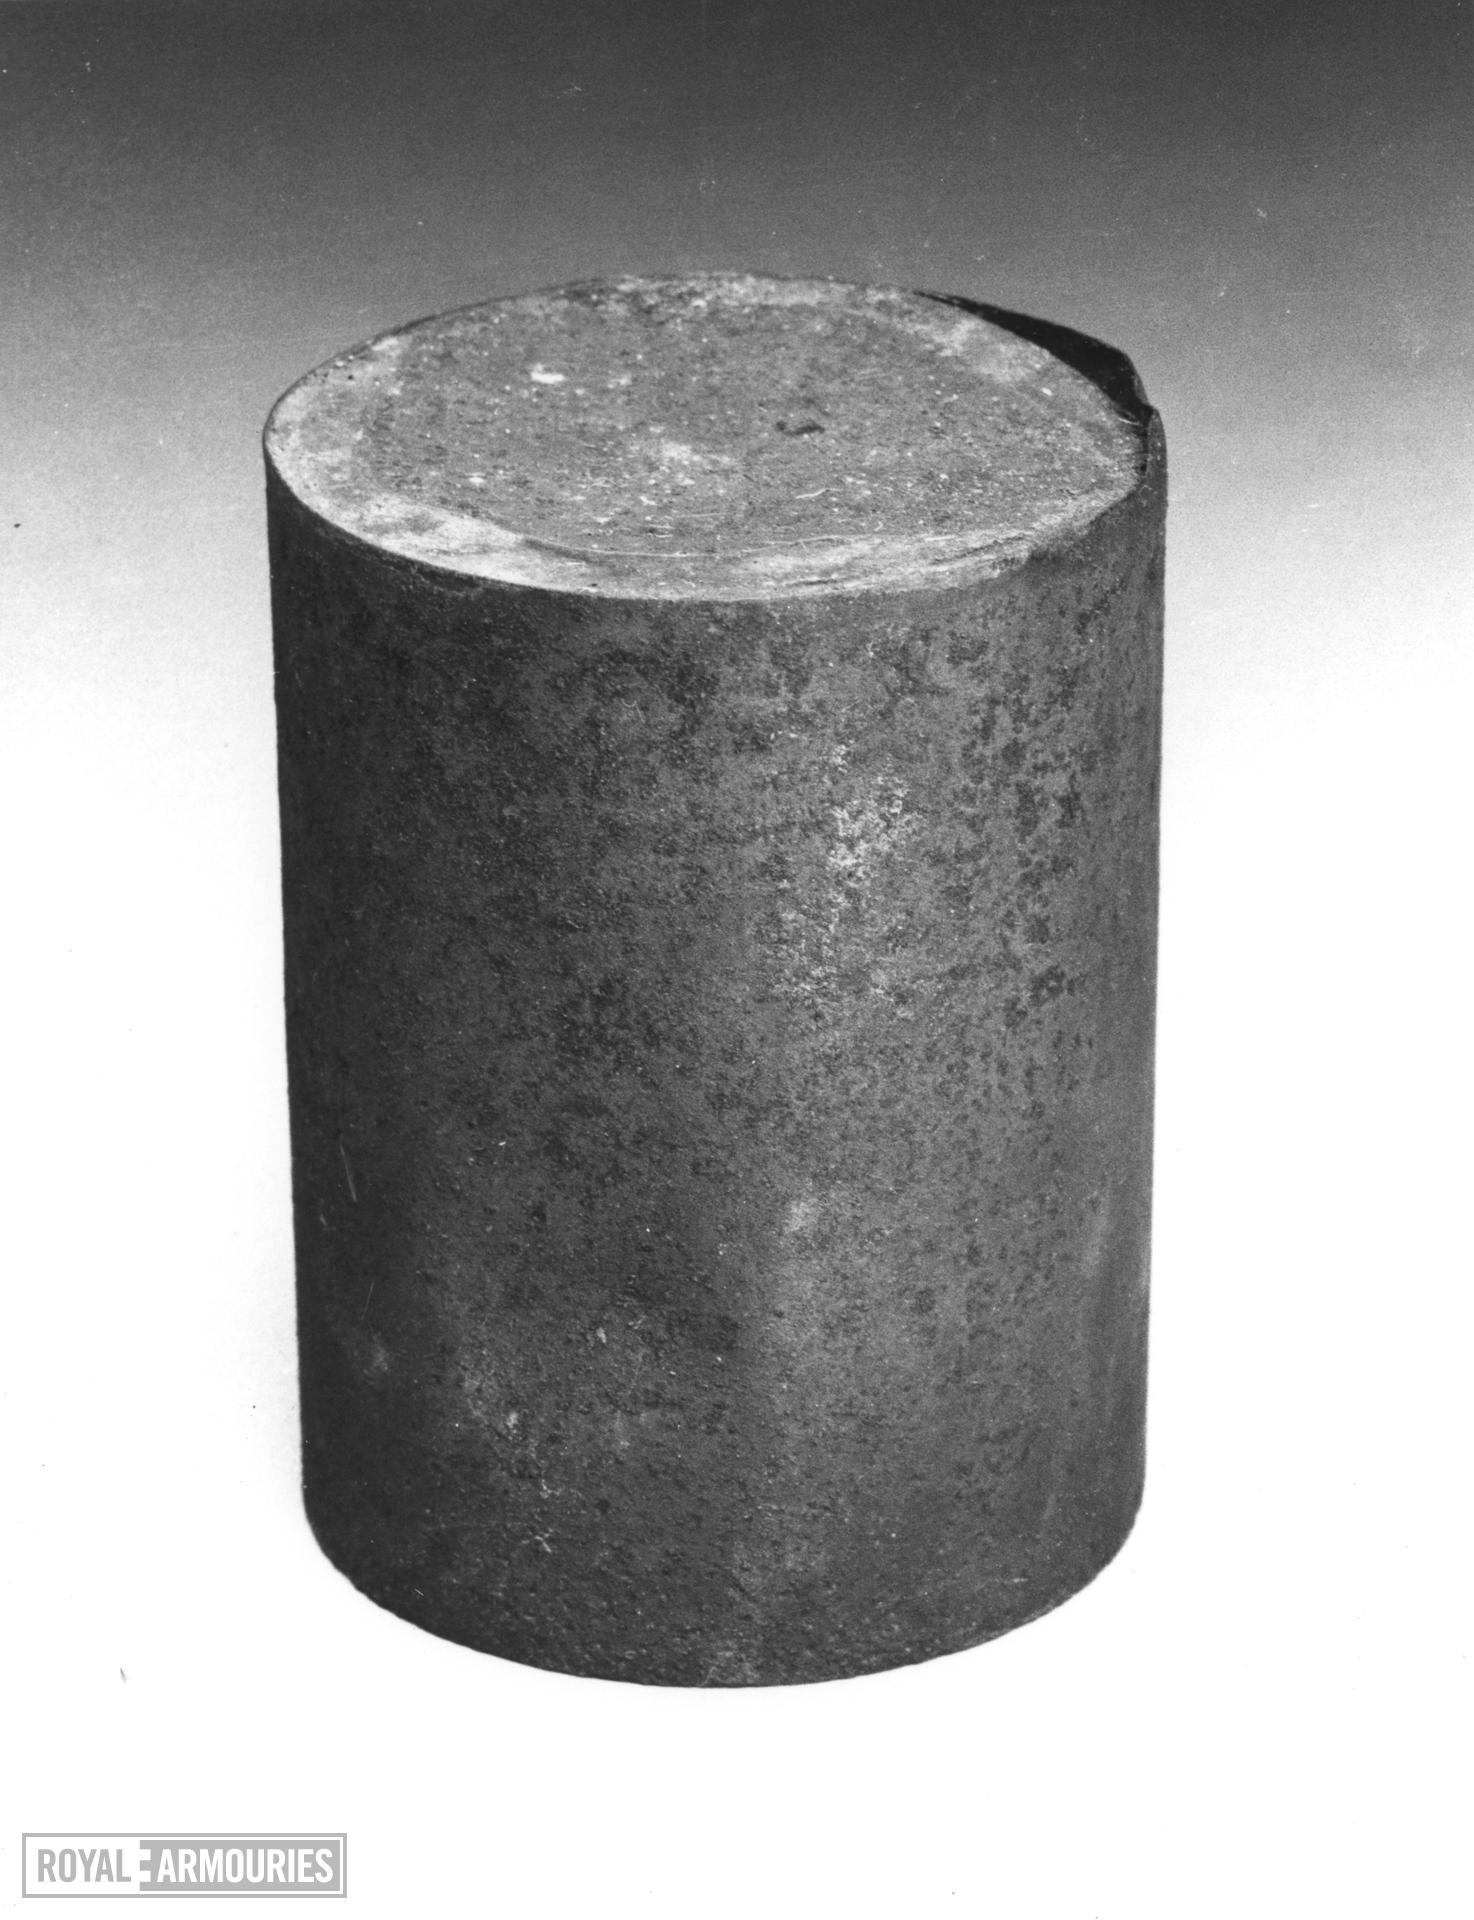 Canister of patched rifle balls